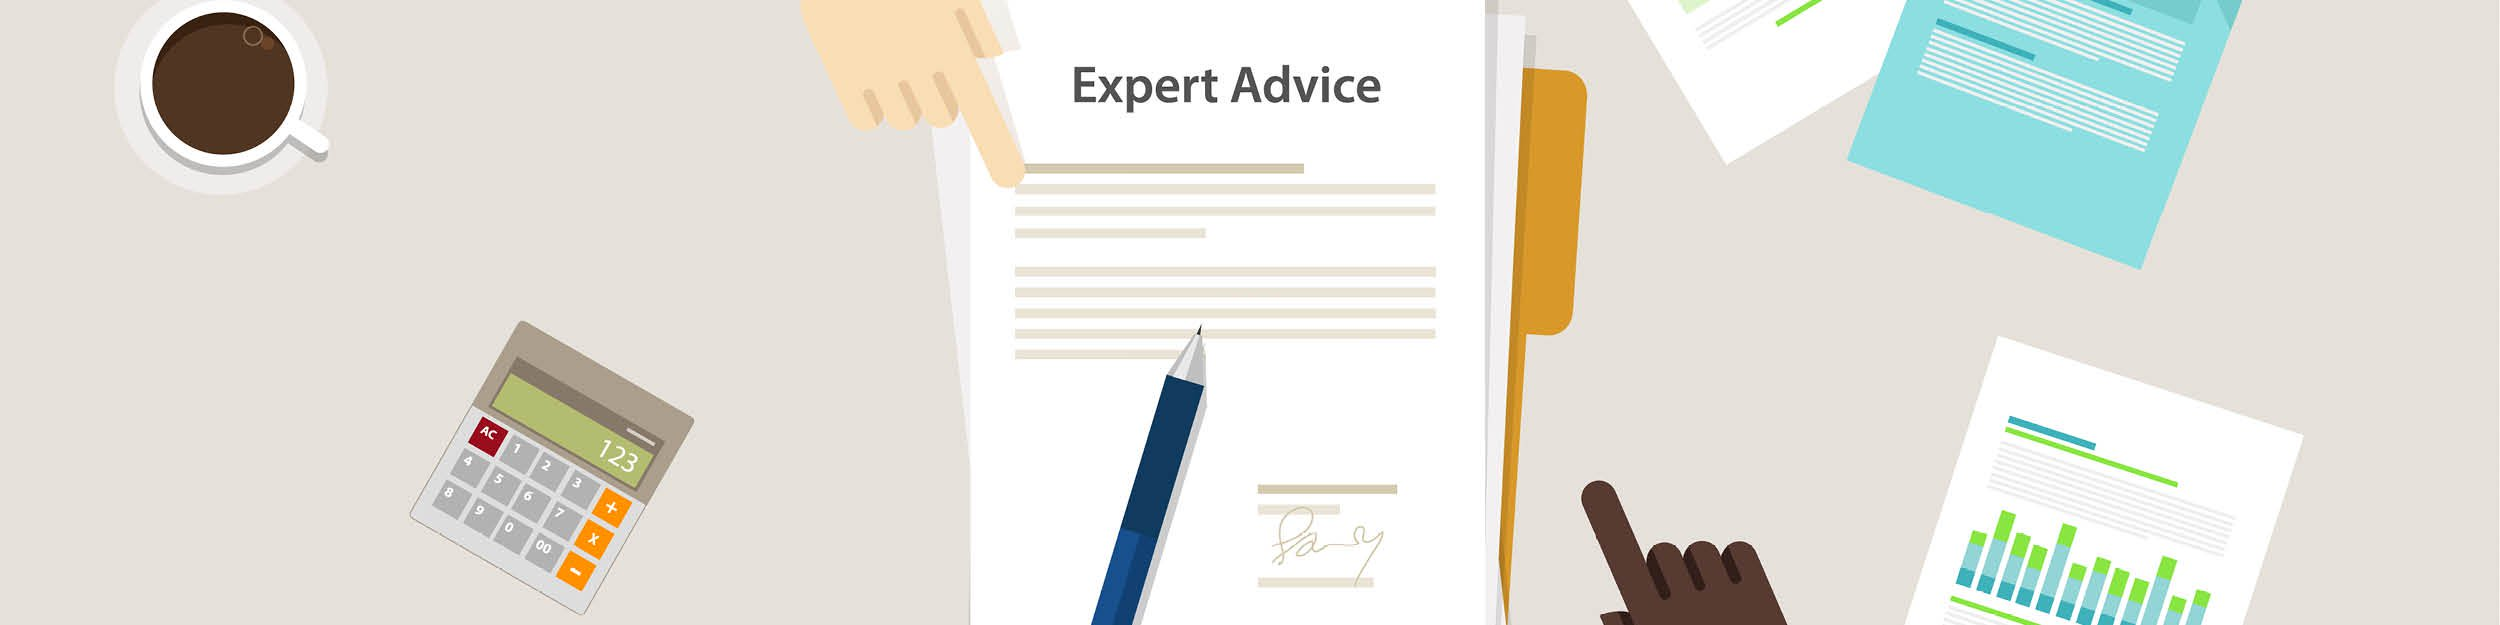 Expert advice paper pen